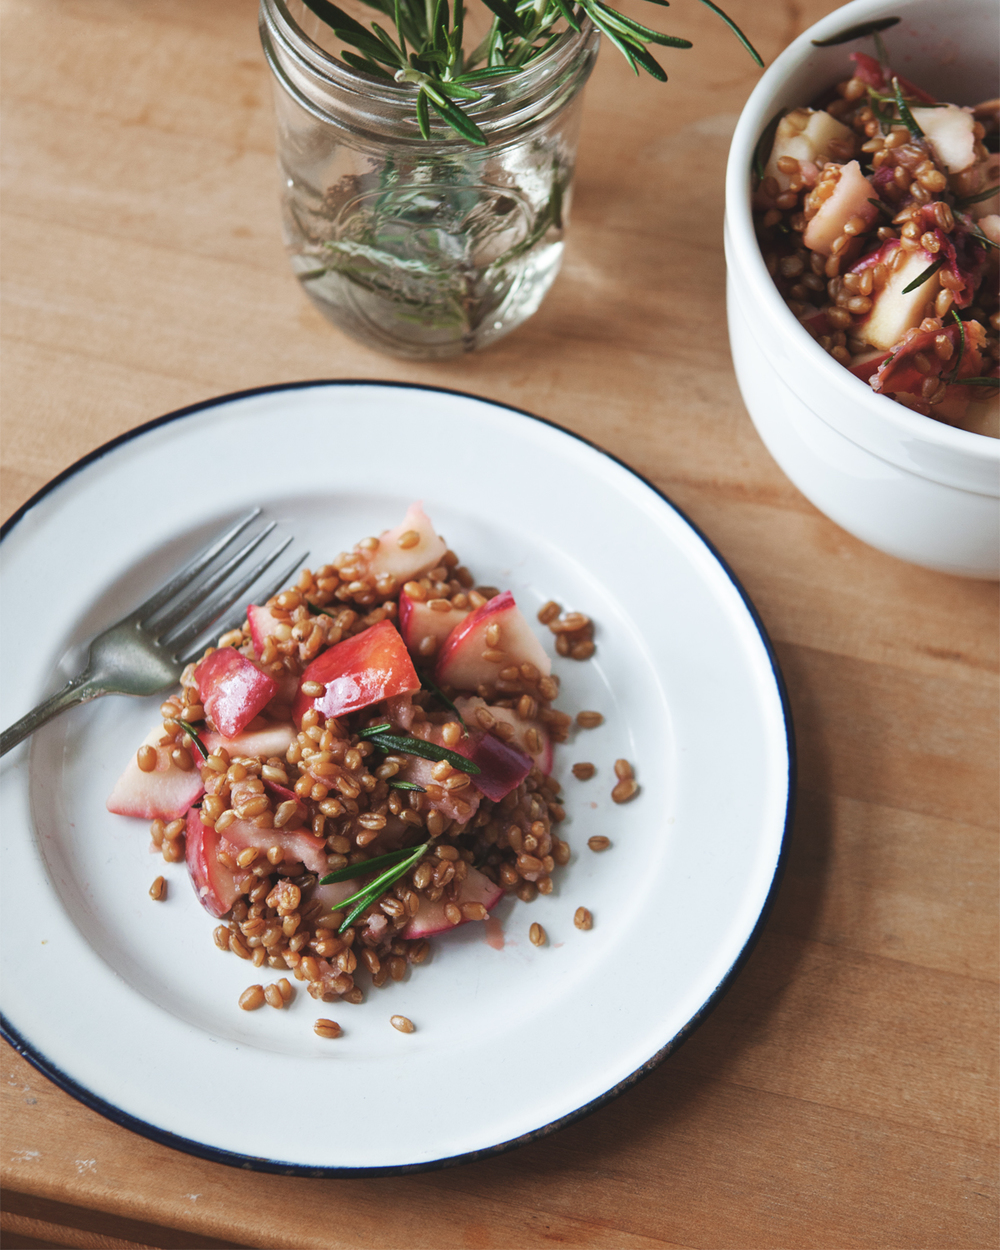 Warm-Rosemary-Apple-Wheatberry-Salad_05.jpg